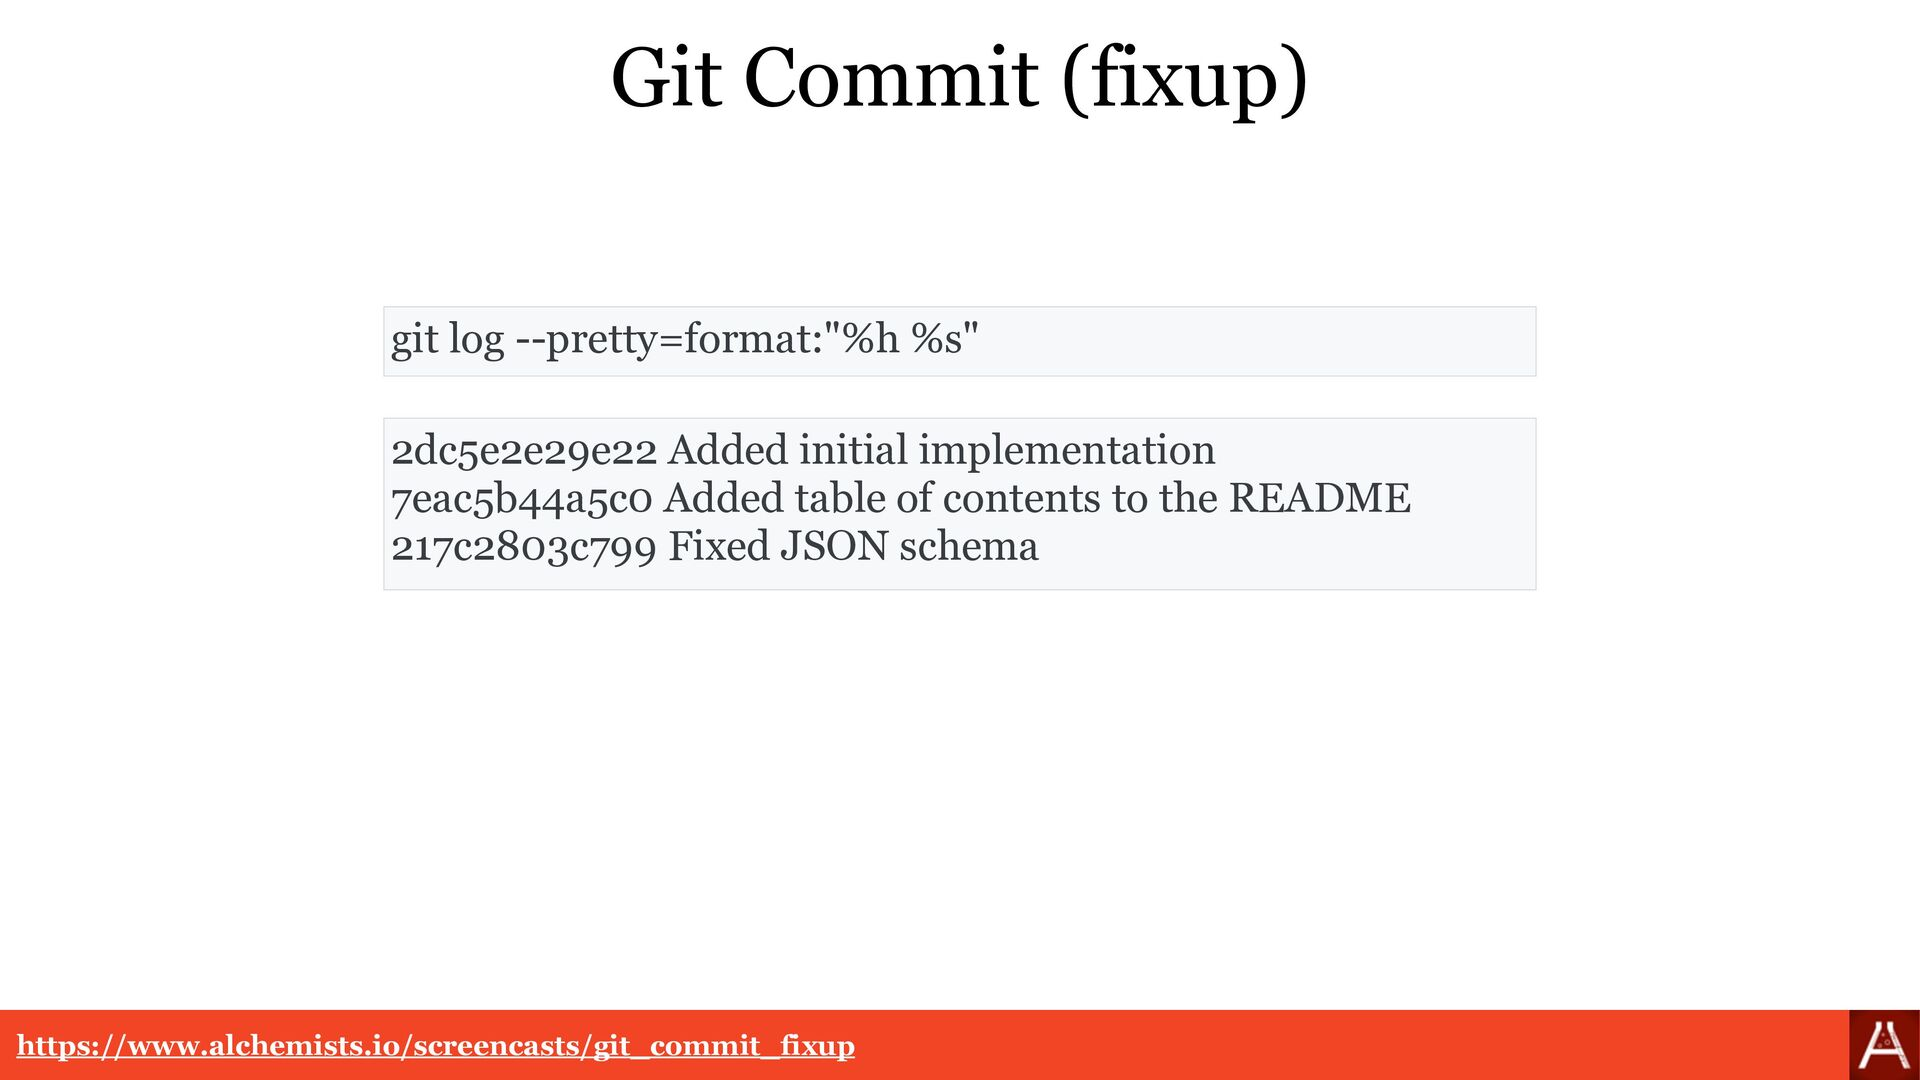 Git Commit (fixup) ca5a69955876 Added initial i...